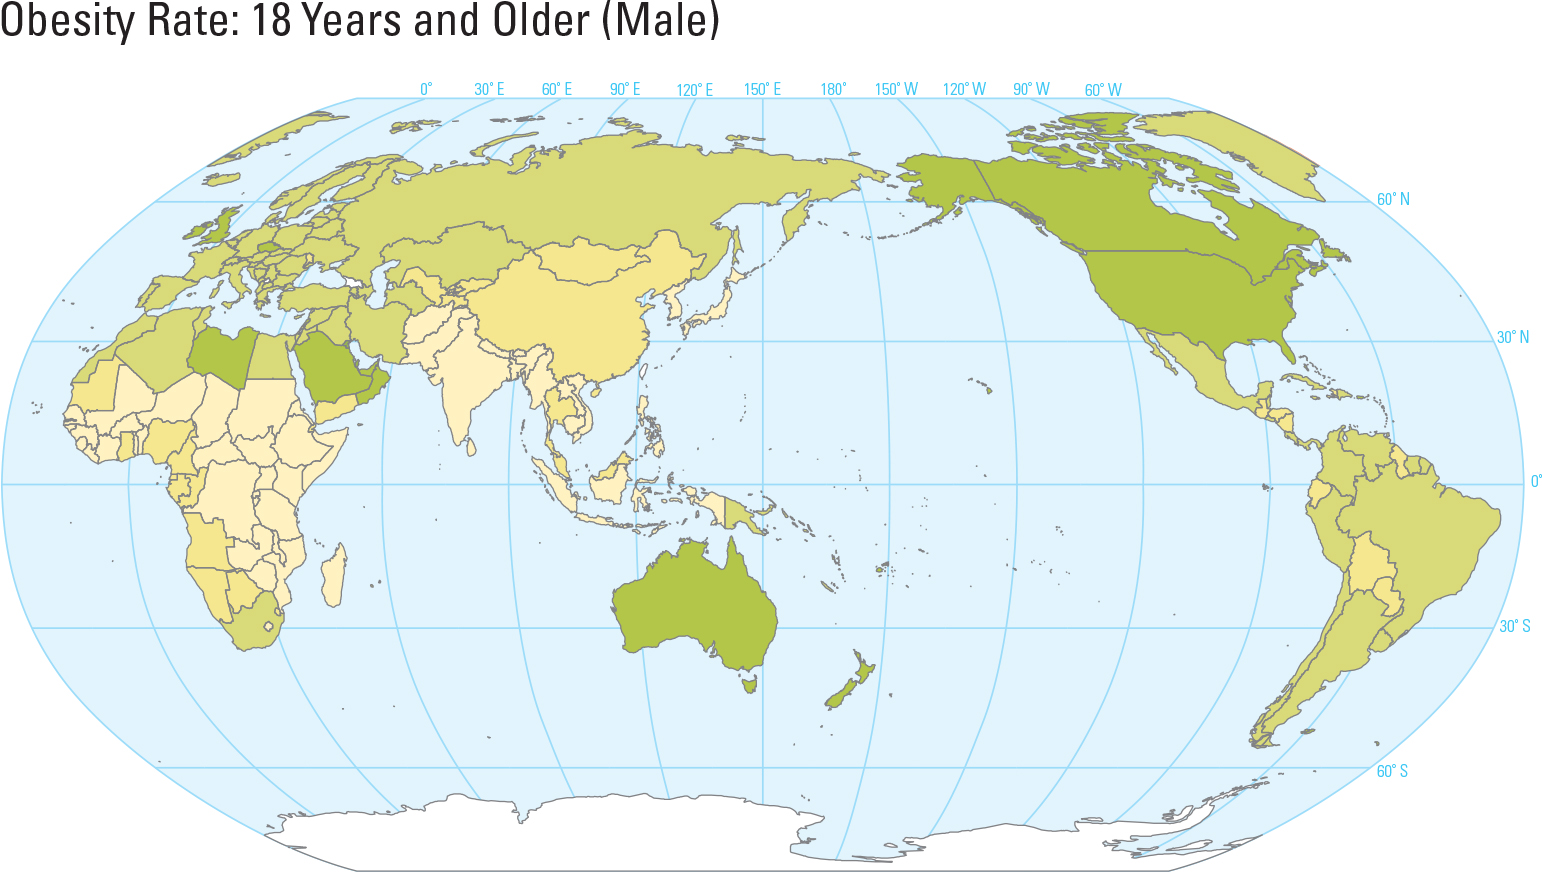 Obesity Rate: 18 Years and Older (Male)